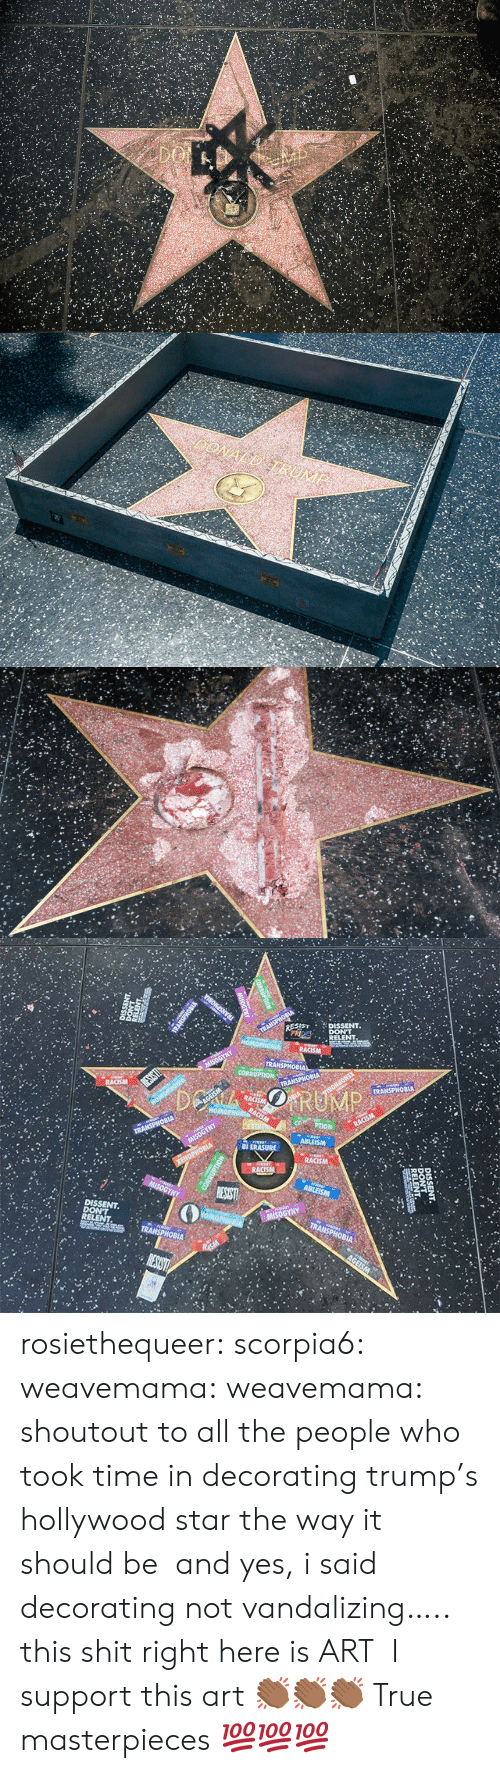 Dissent: SIST DISSENT  DISSENT rosiethequeer:   scorpia6:   weavemama:  weavemama: shoutout to all the people who took time in decorating trump's hollywood star the way it should be  and yes, i said decorating not vandalizing….. this shit right here is ART    I support this art 👏🏾👏🏾👏🏾   True masterpieces 💯💯💯